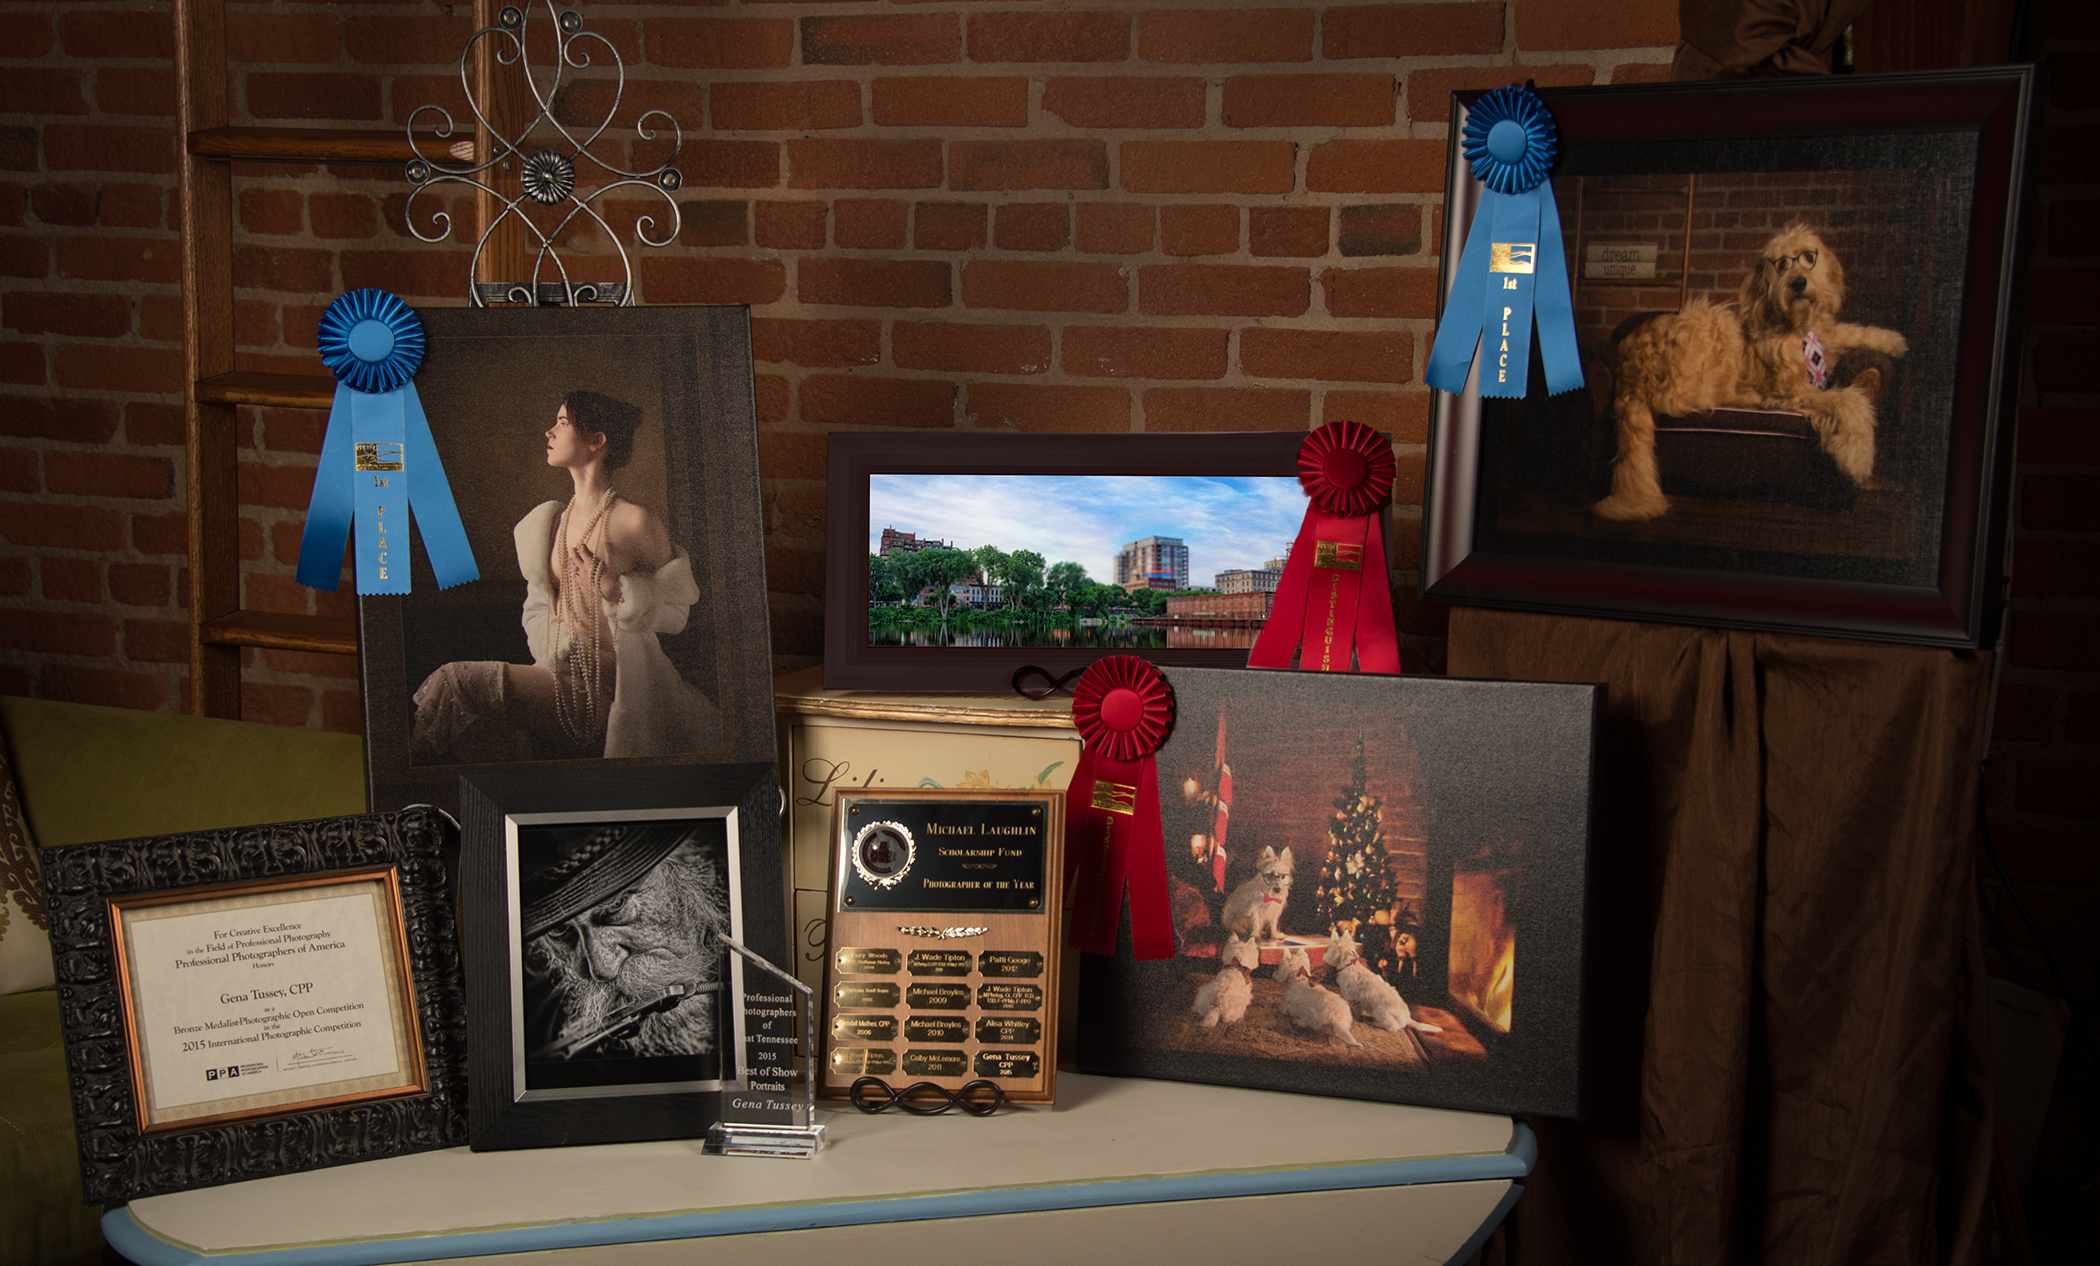 2015 Master of Photography PPA, 2015 Bronze Medallion, IPC, 2015 PPETN Photographer of the Year